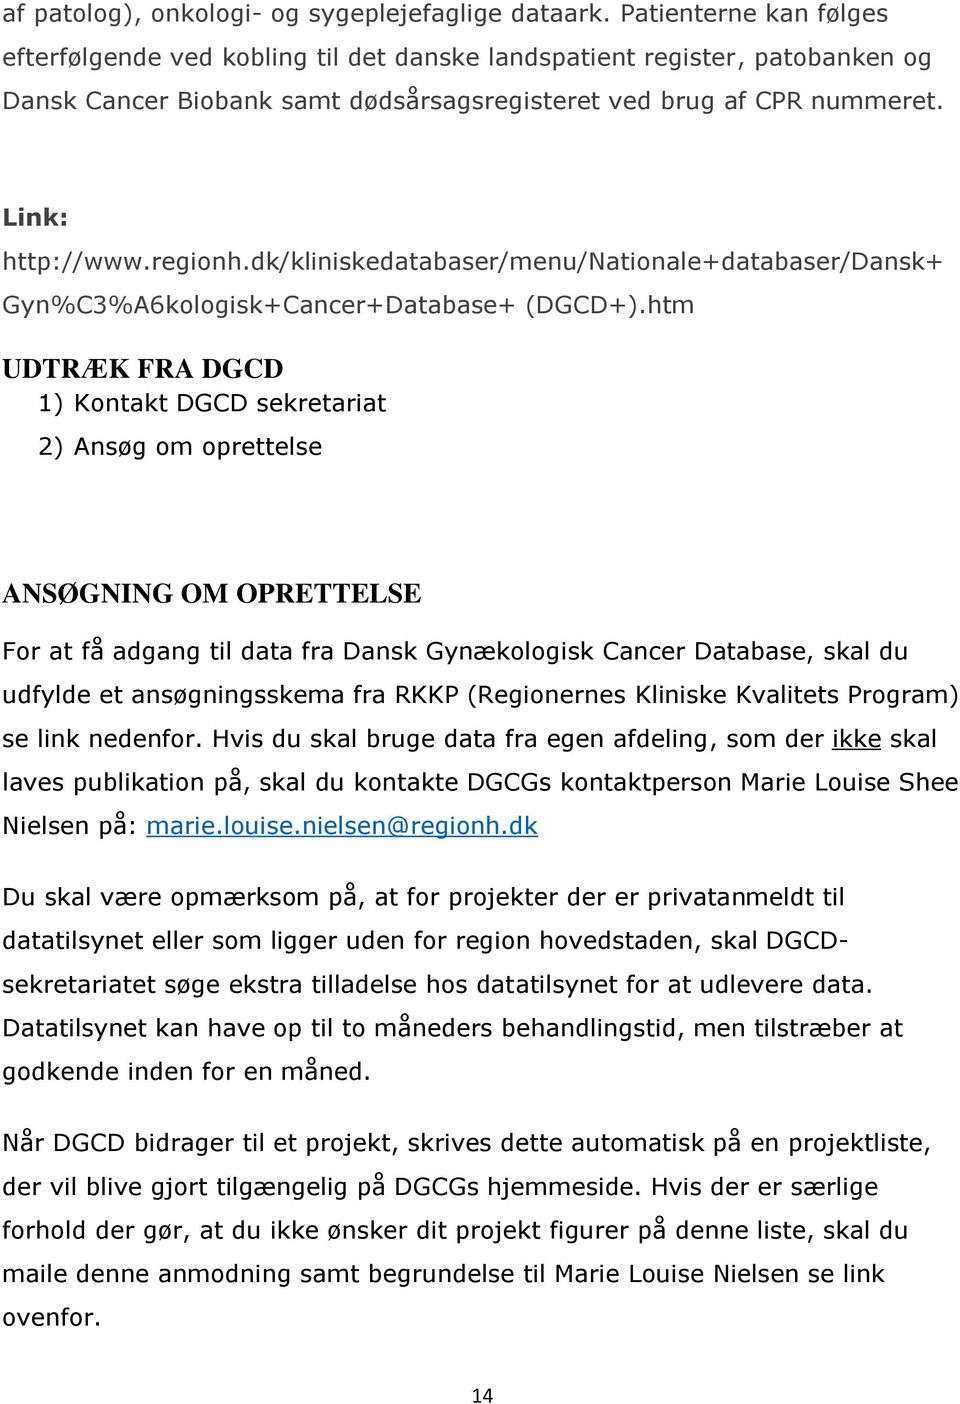 dk/kliniskedatabaser/menu/nationale+databaser/dansk+ Gyn%C3%A6kologisk+Cancer+Database+ (DGCD+).